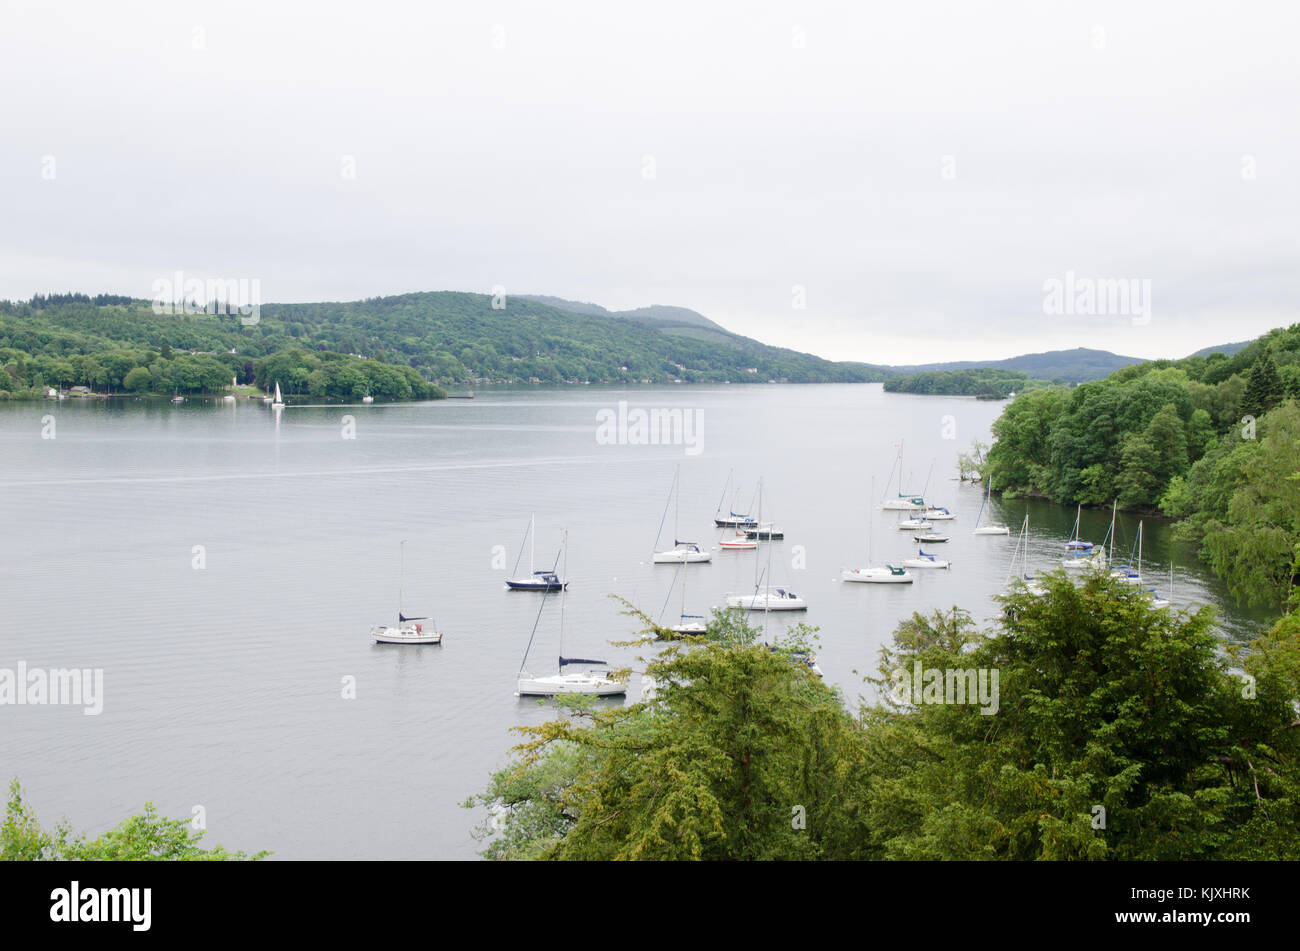 Boats moored on Lake Windermere in the English Lake District - Stock Image